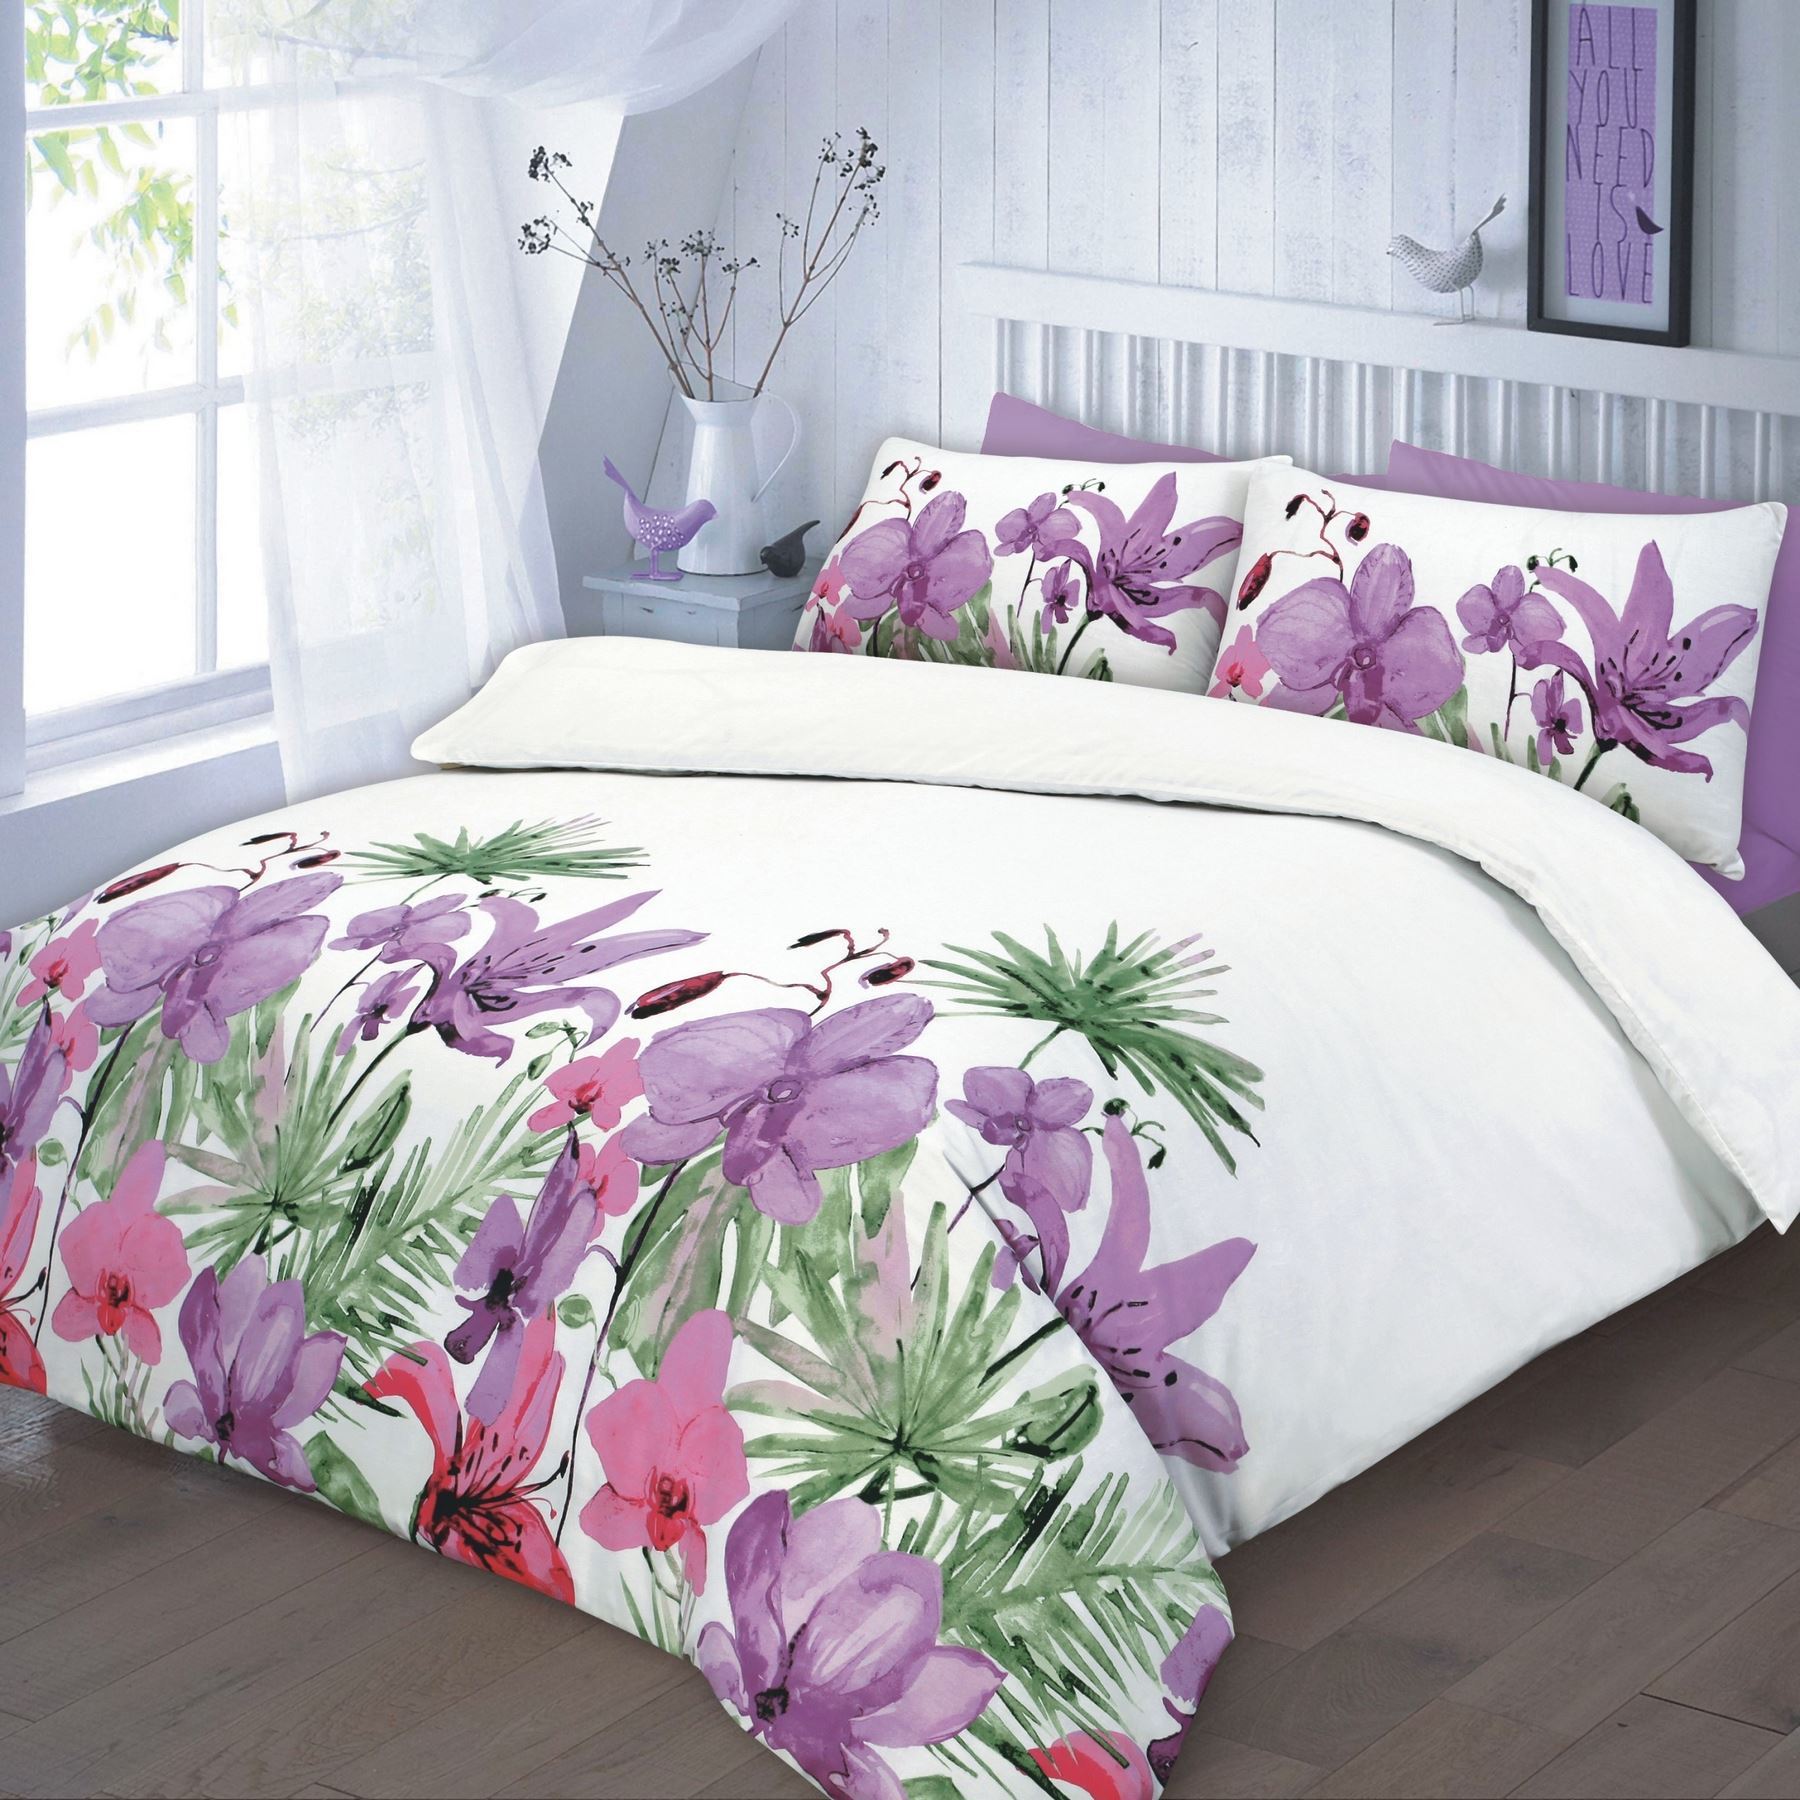 Floral Quilt Duvet Cover Amp Pillowcase Teal Pink Lilac